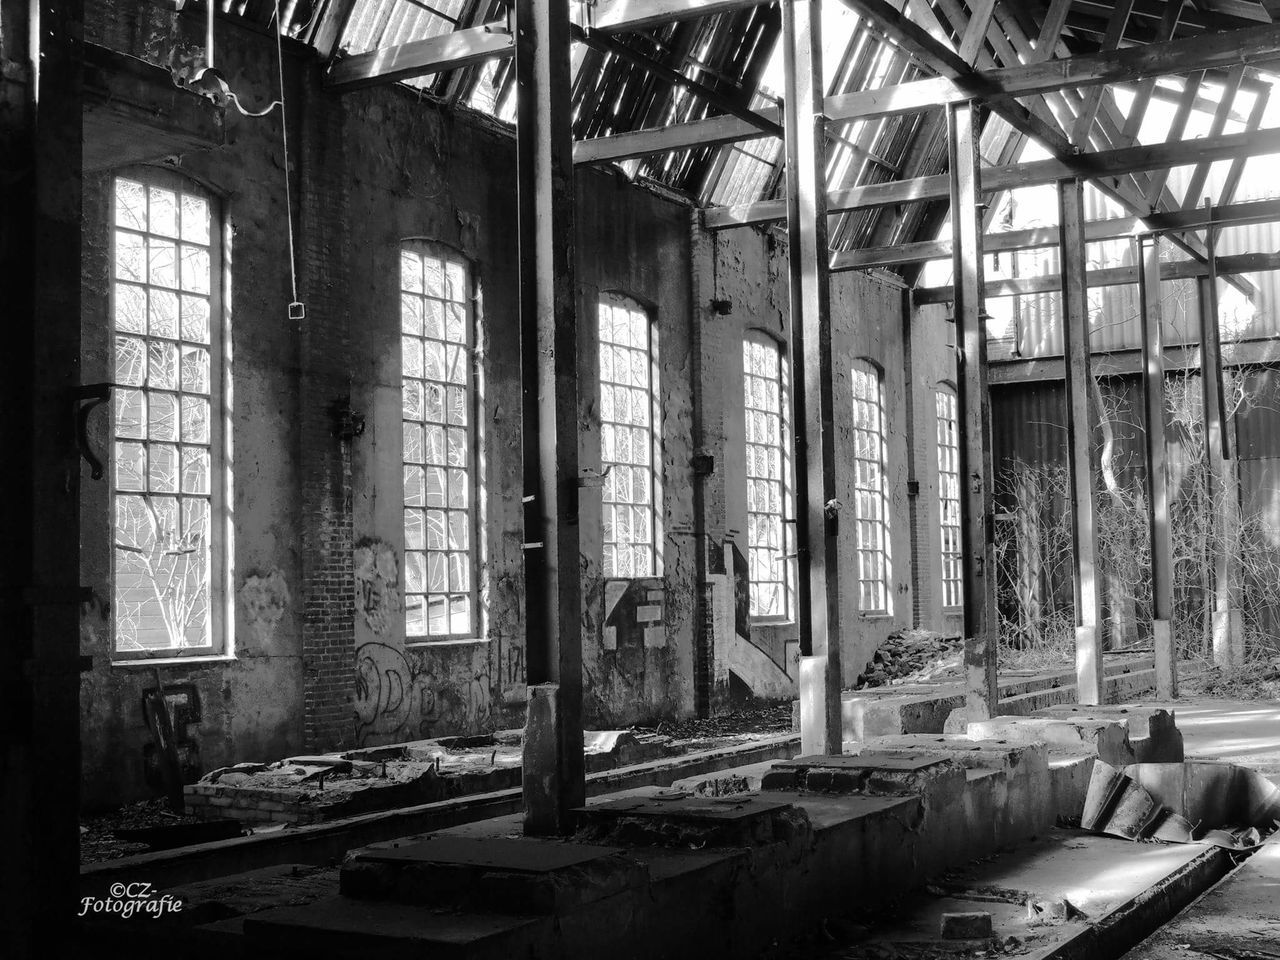 Old Buildings Breaking The Rules Urbexphotography Urbanphotography Czphotography Old Factory Urban Urbex Holland Groningen Holland No People Architecture Window Indoors  Day Interior Domestic Room Architecture